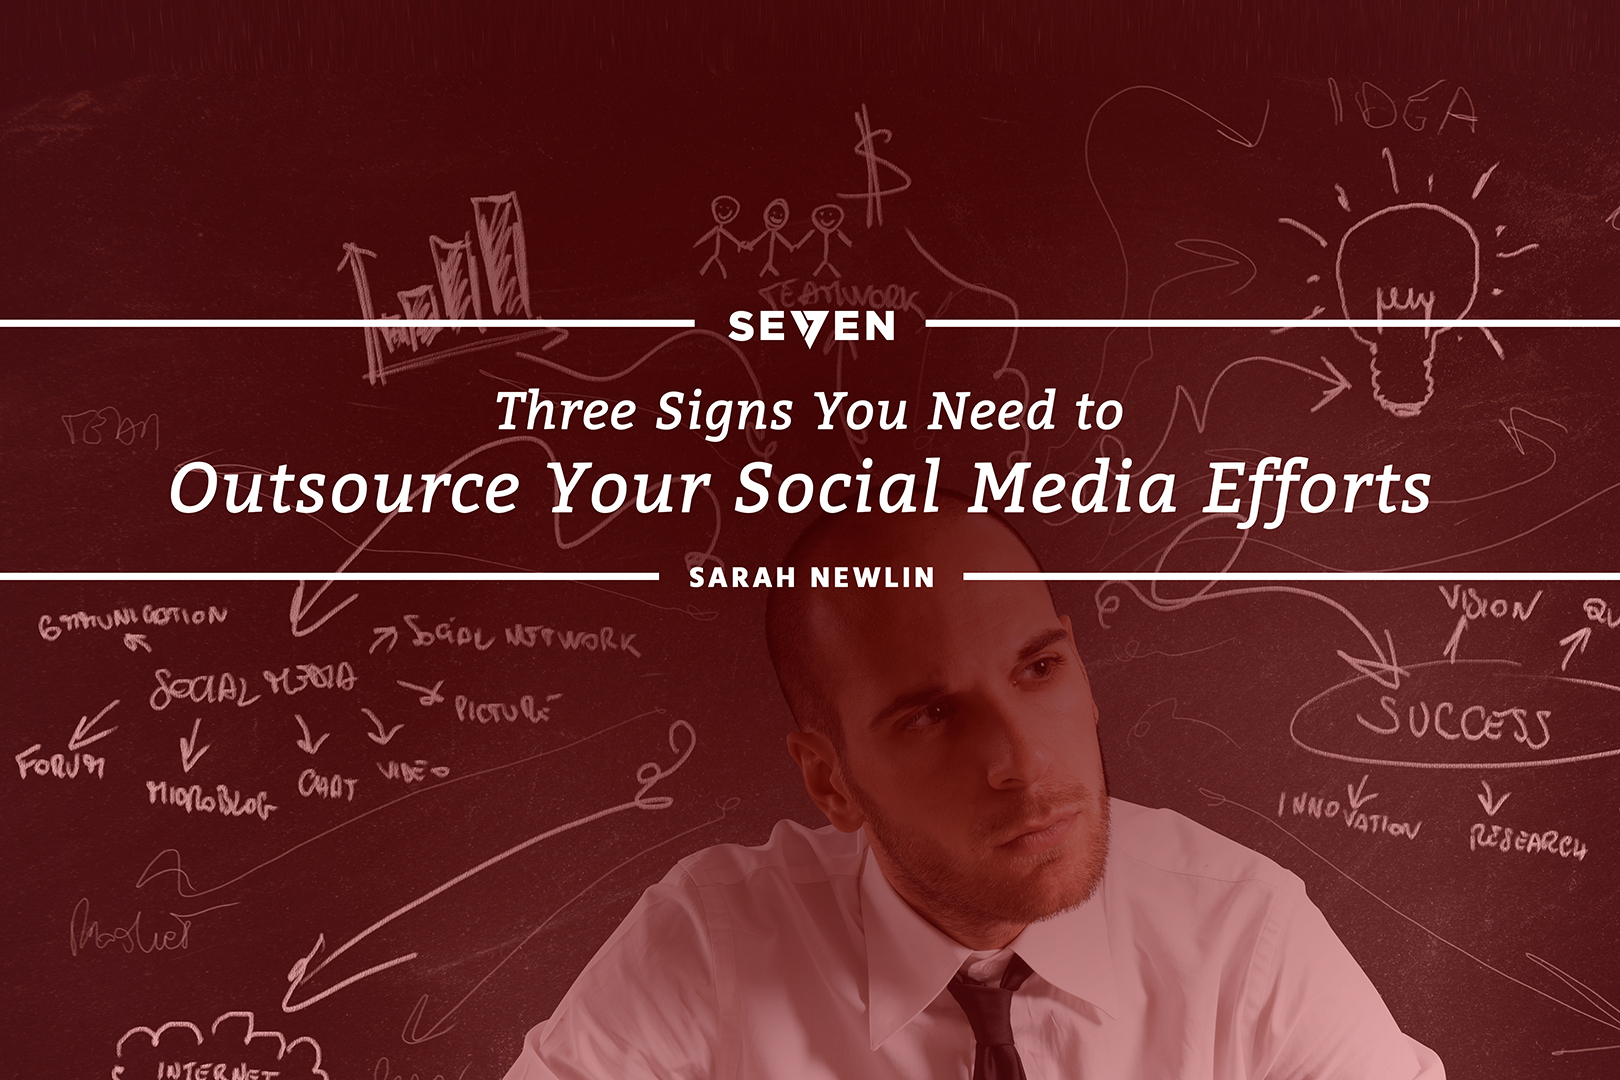 Three Signs You Need to Outsource Your Social Media Efforts